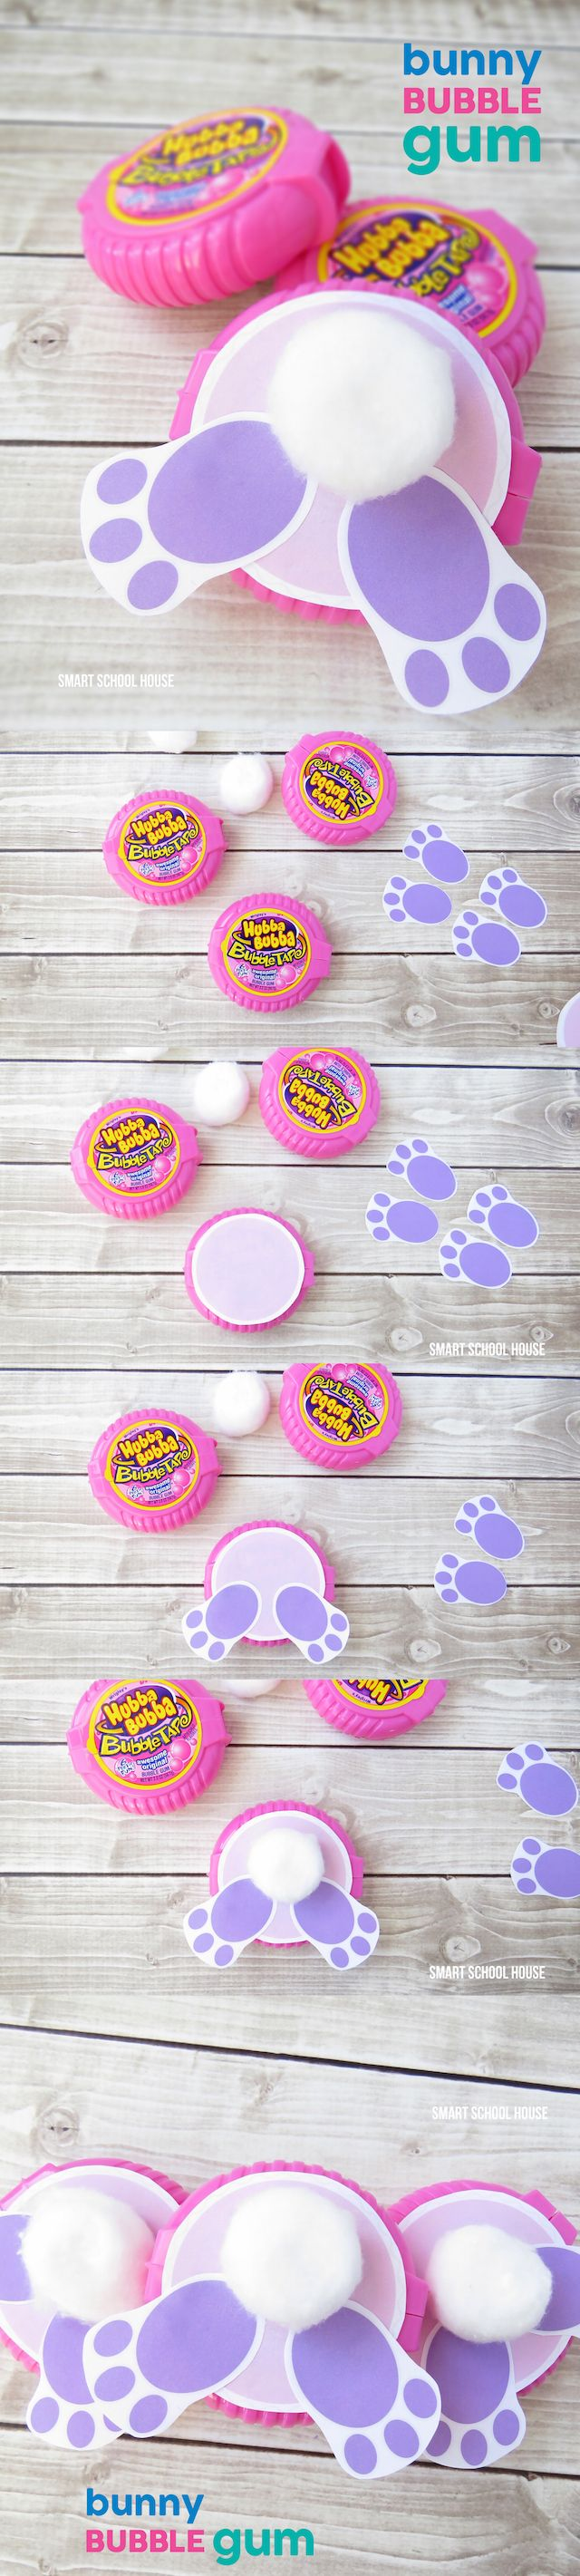 246 best images about happy easter crafts on pinterest for Easter craft gift ideas